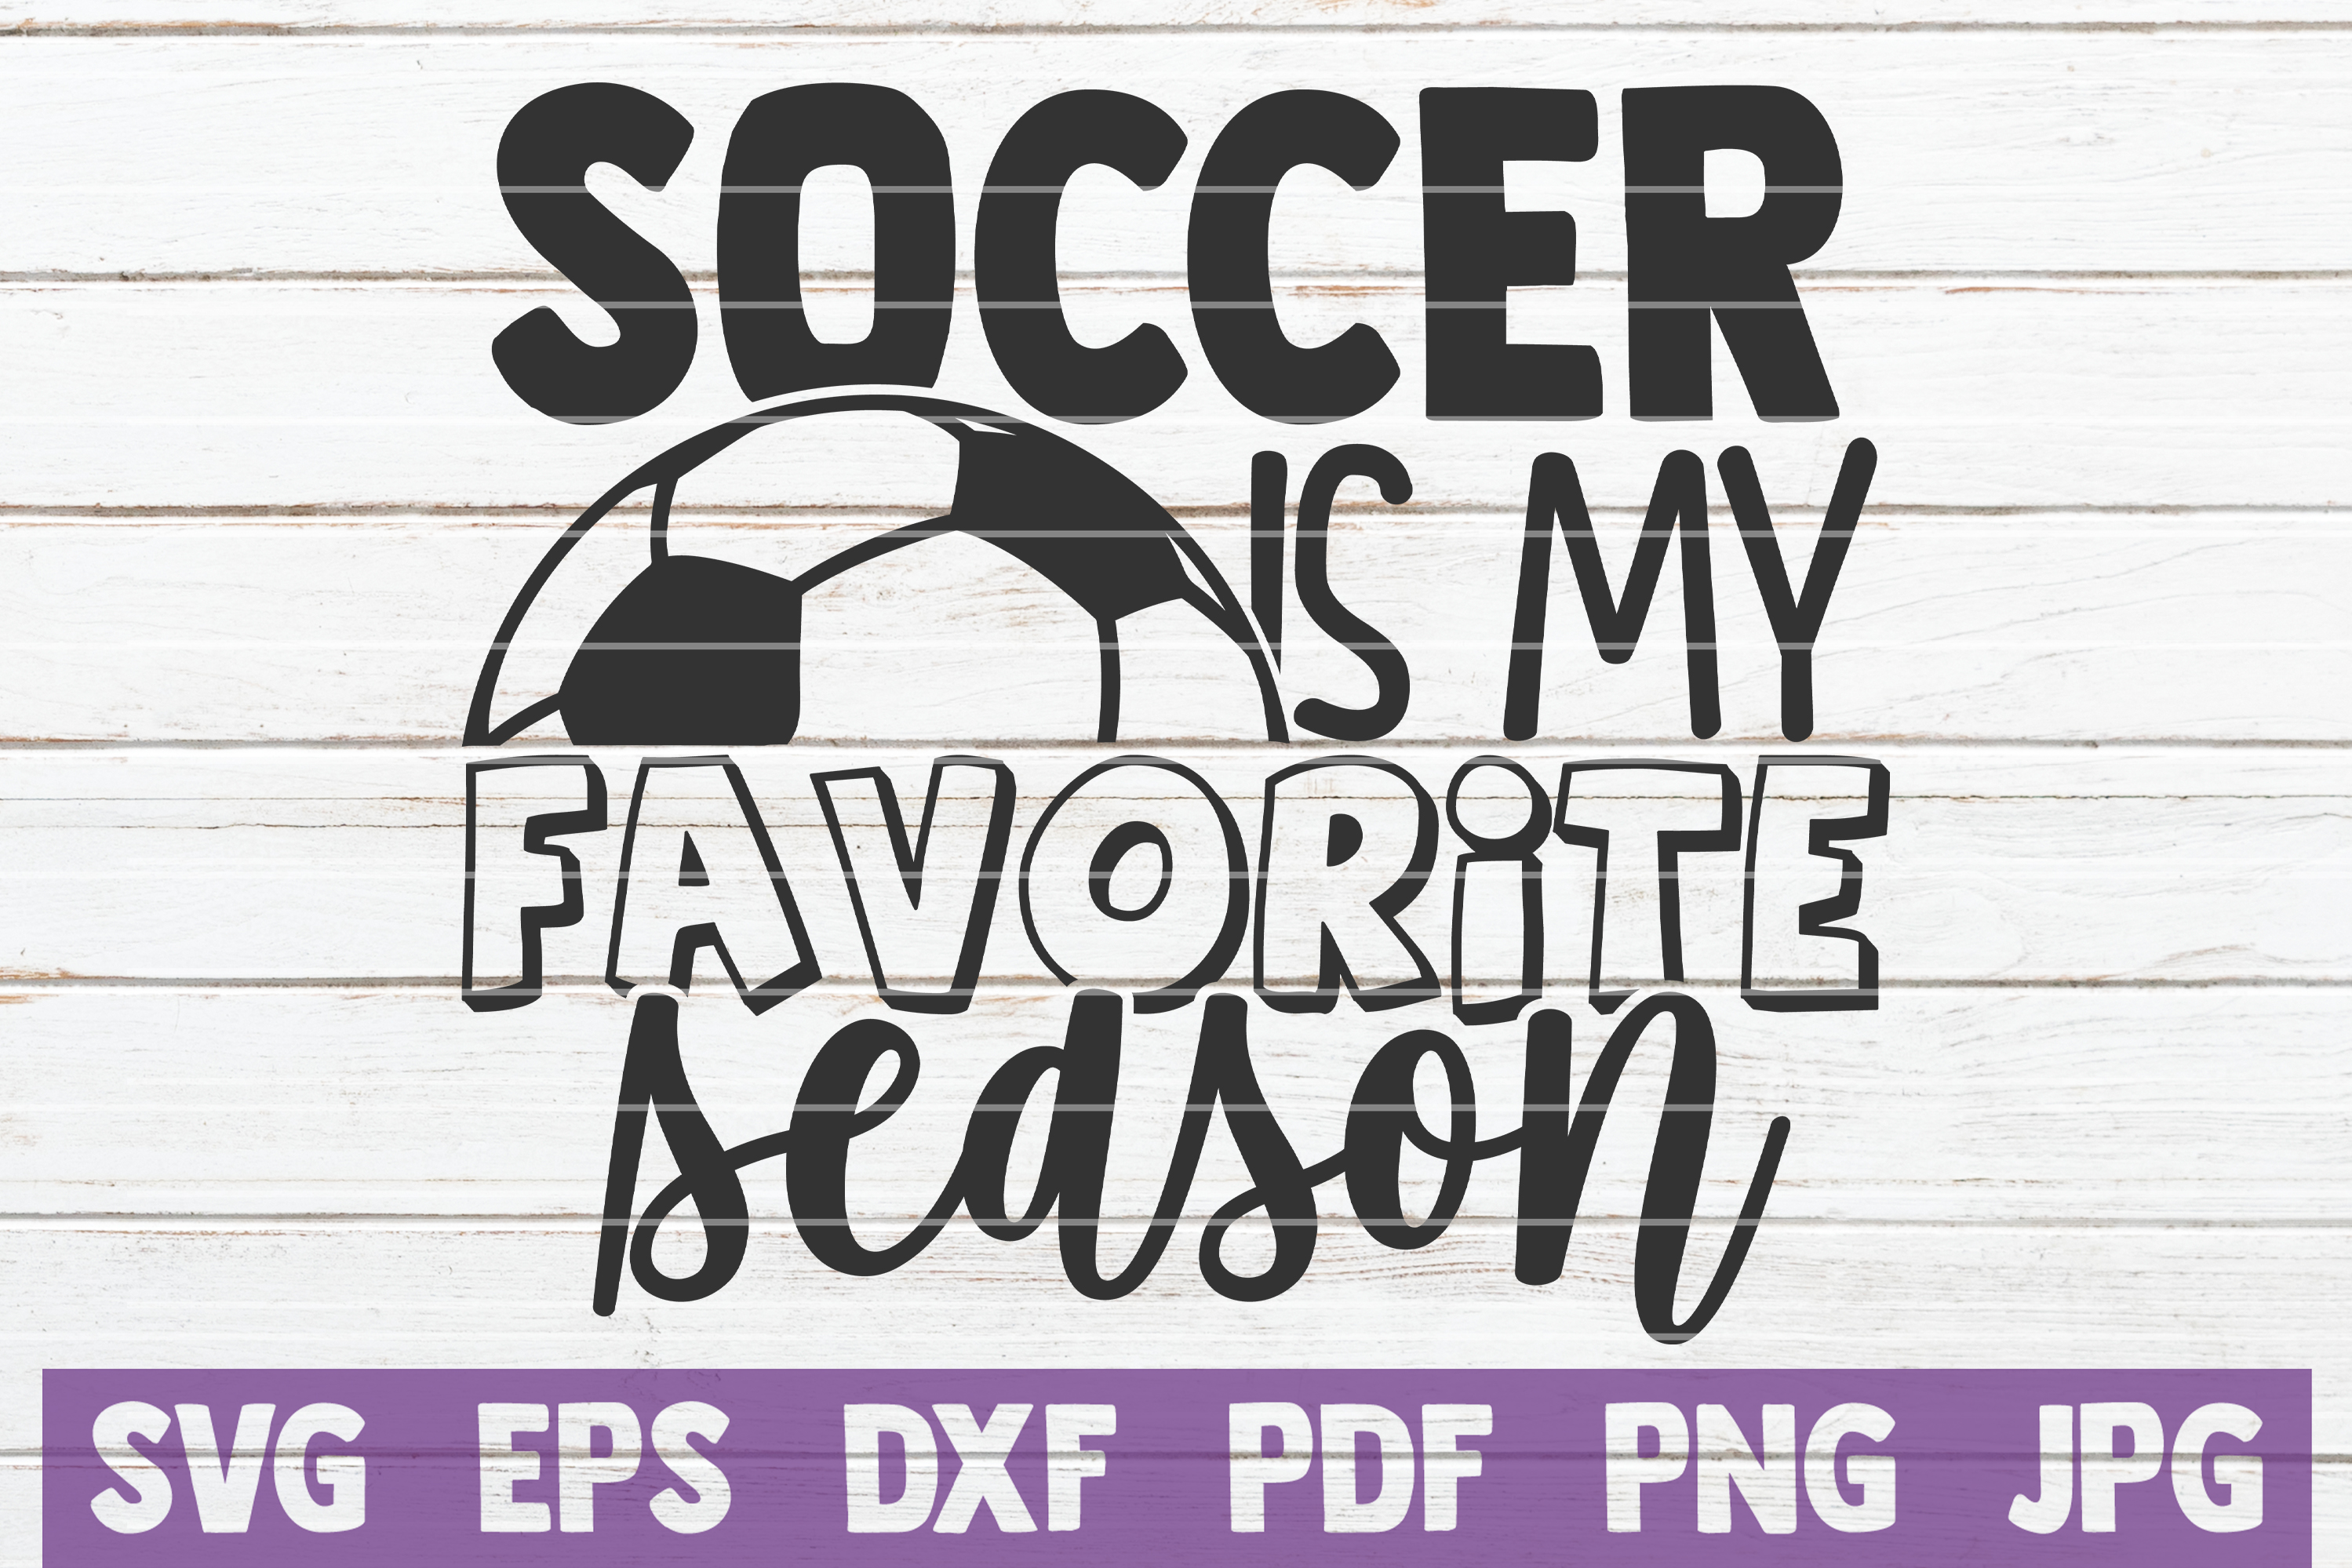 Download Free Soccer Is My Favorite Season Graphic By Mintymarshmallows for Cricut Explore, Silhouette and other cutting machines.